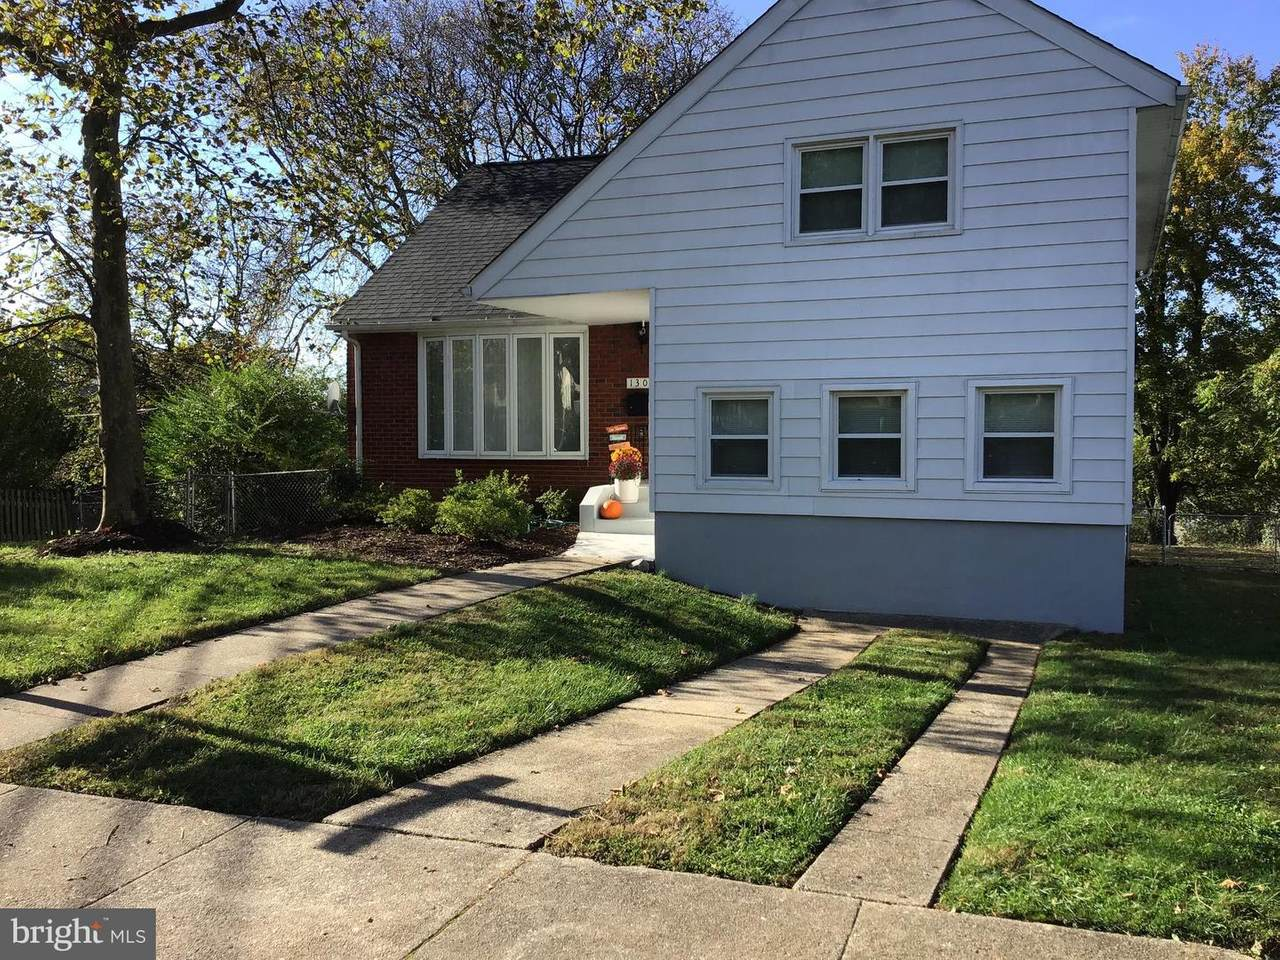 https://bt-photos.global.ssl.fastly.net/brightmls/1280_boomver_1_304321819275-2.jpg